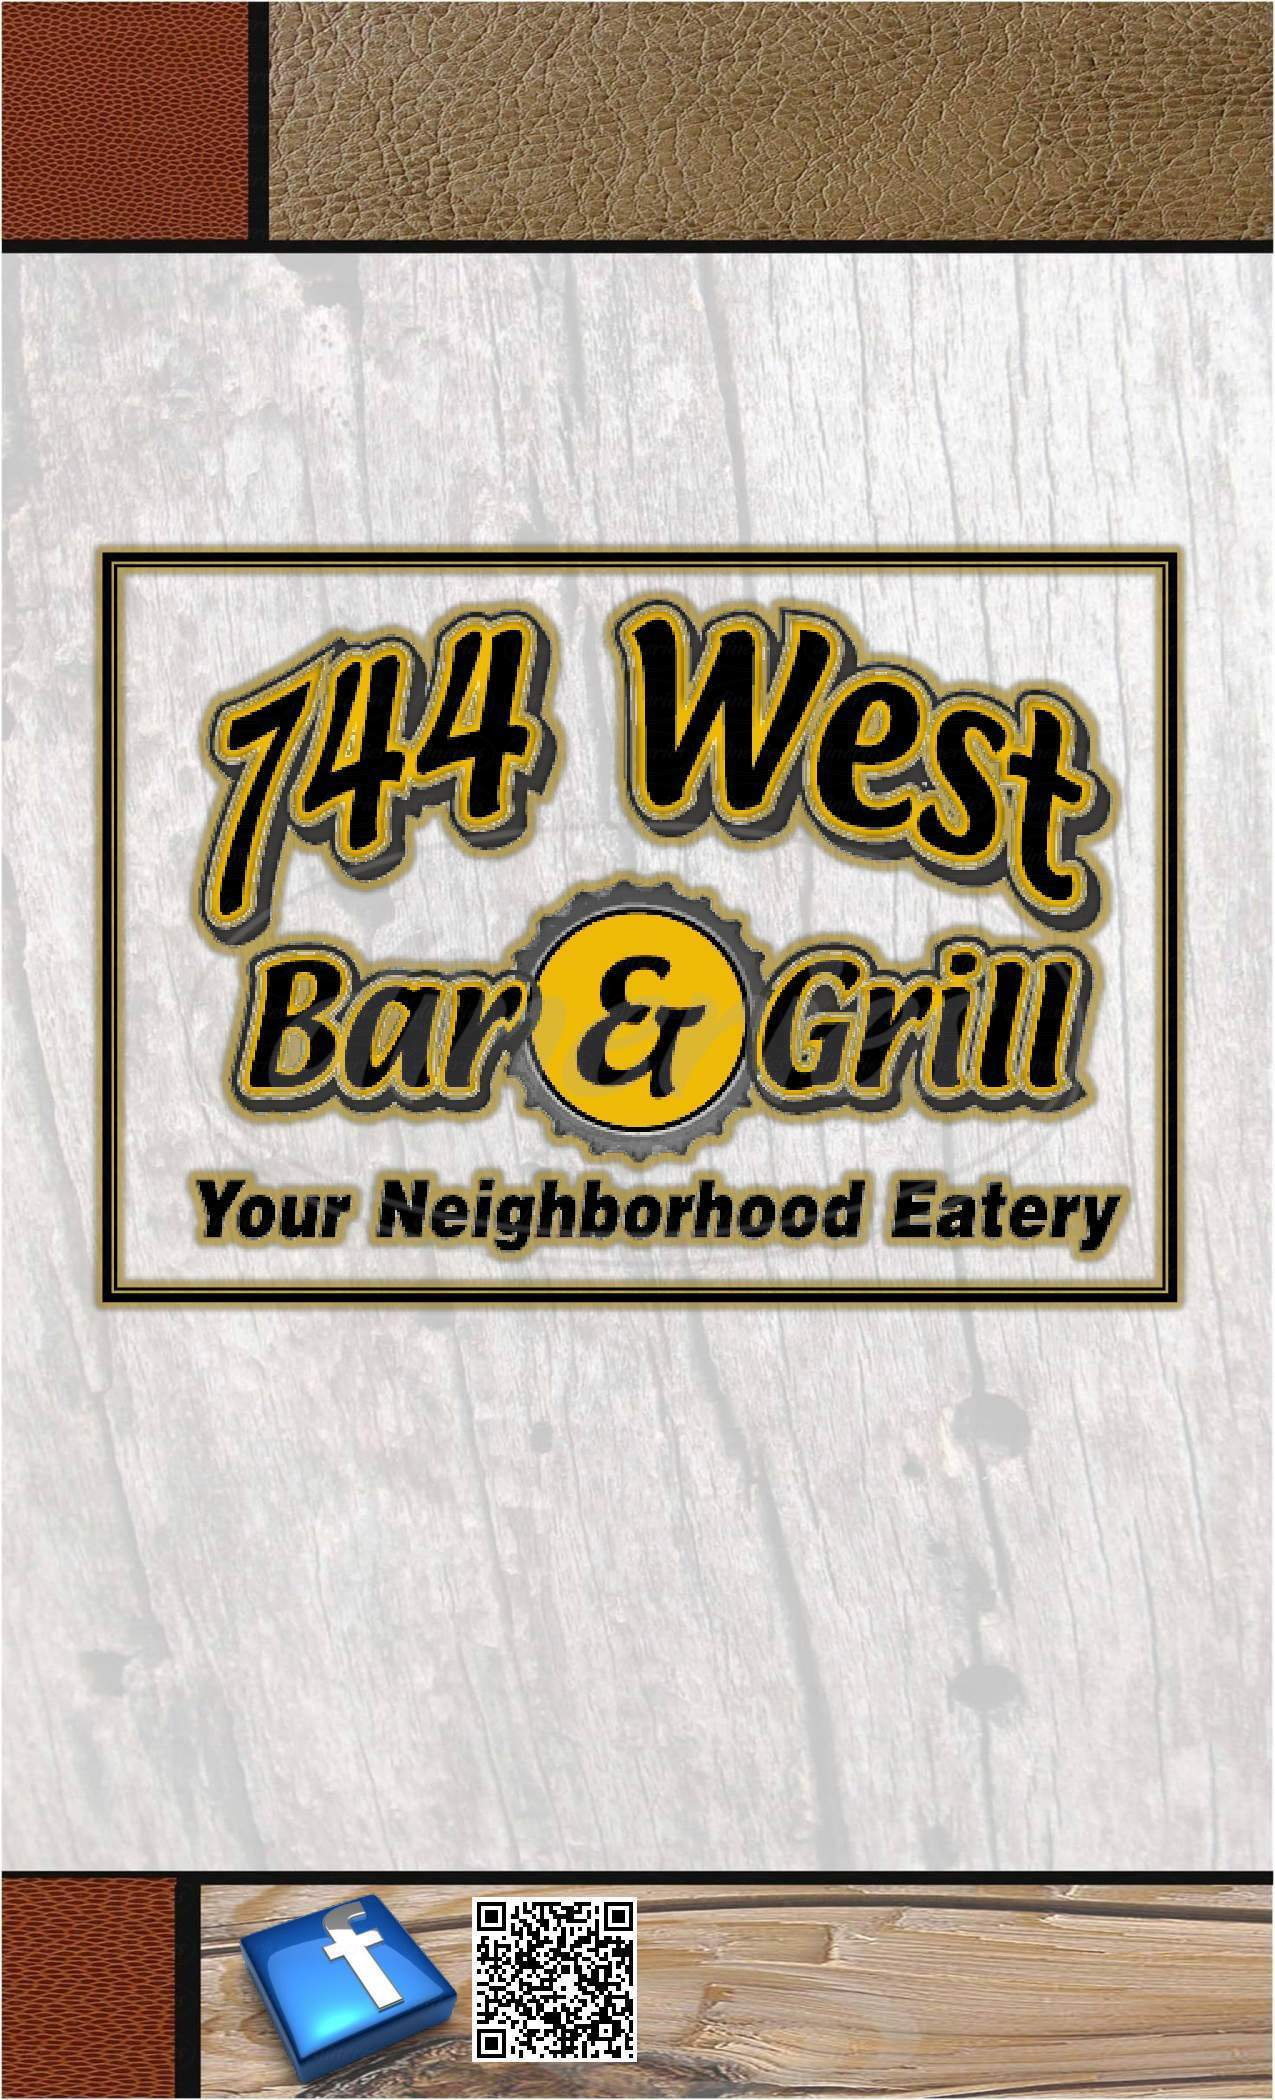 menu for 744 West Bar & Grill